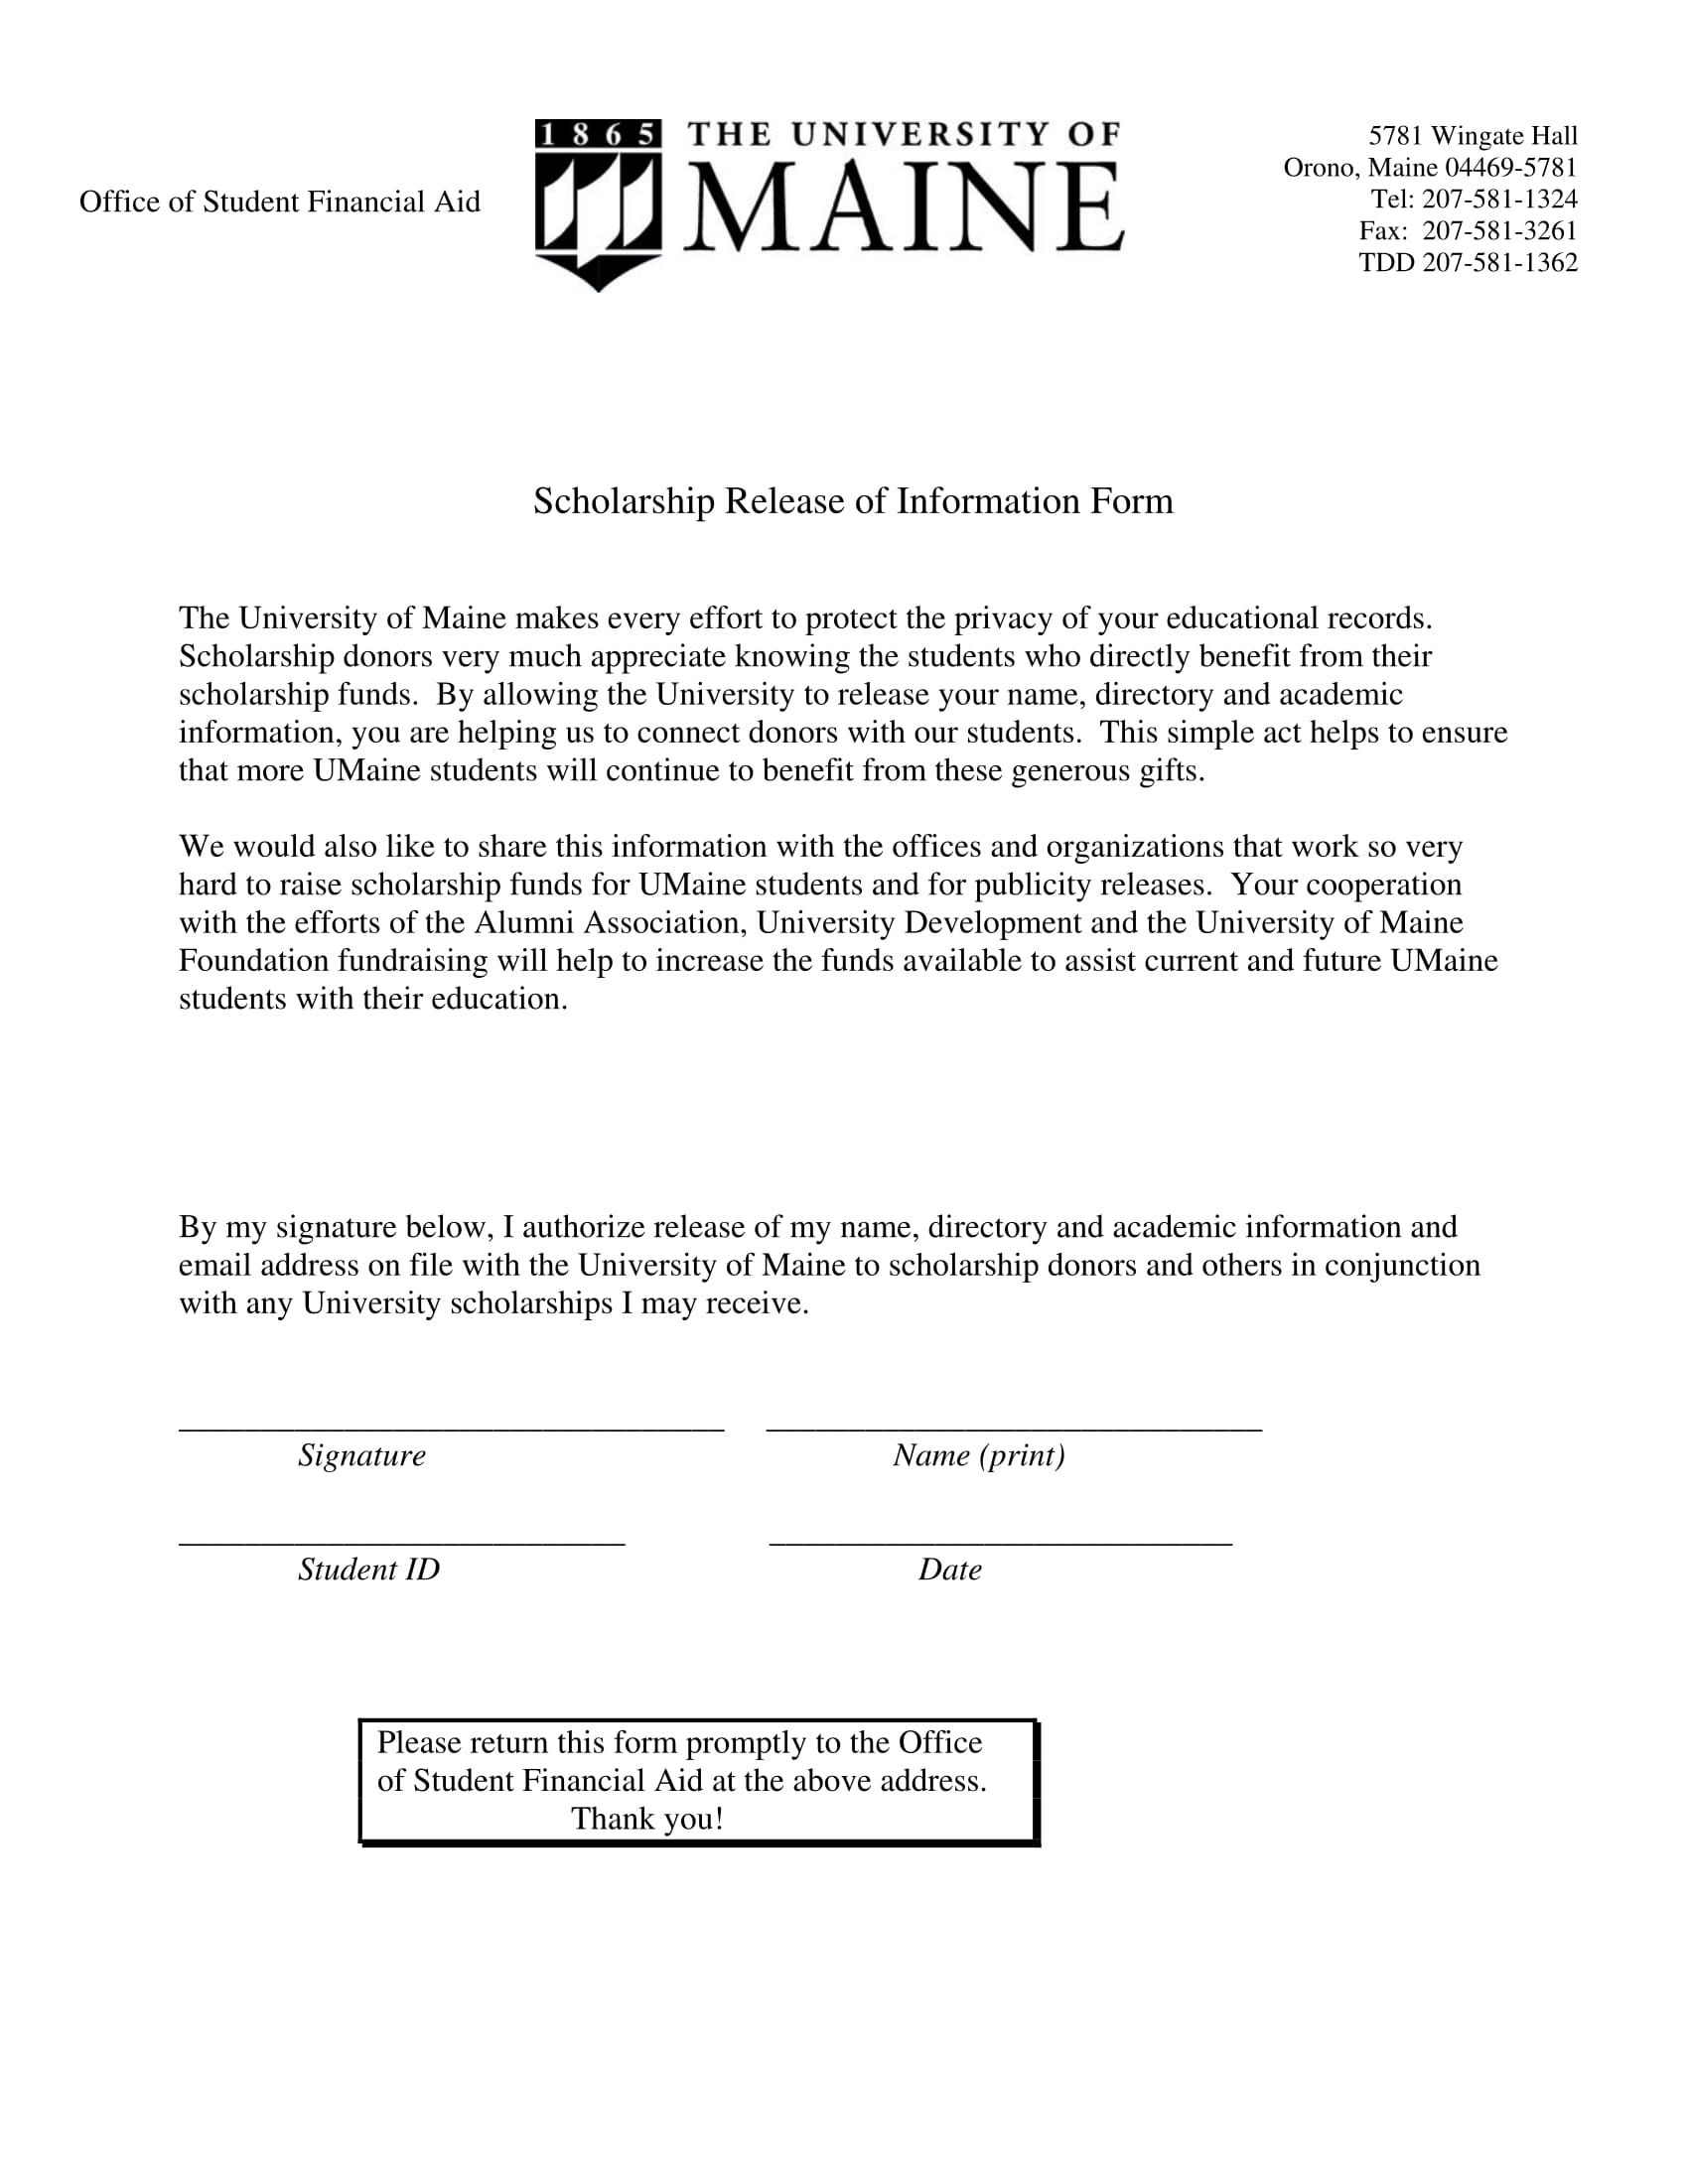 scholarship release of information form 1